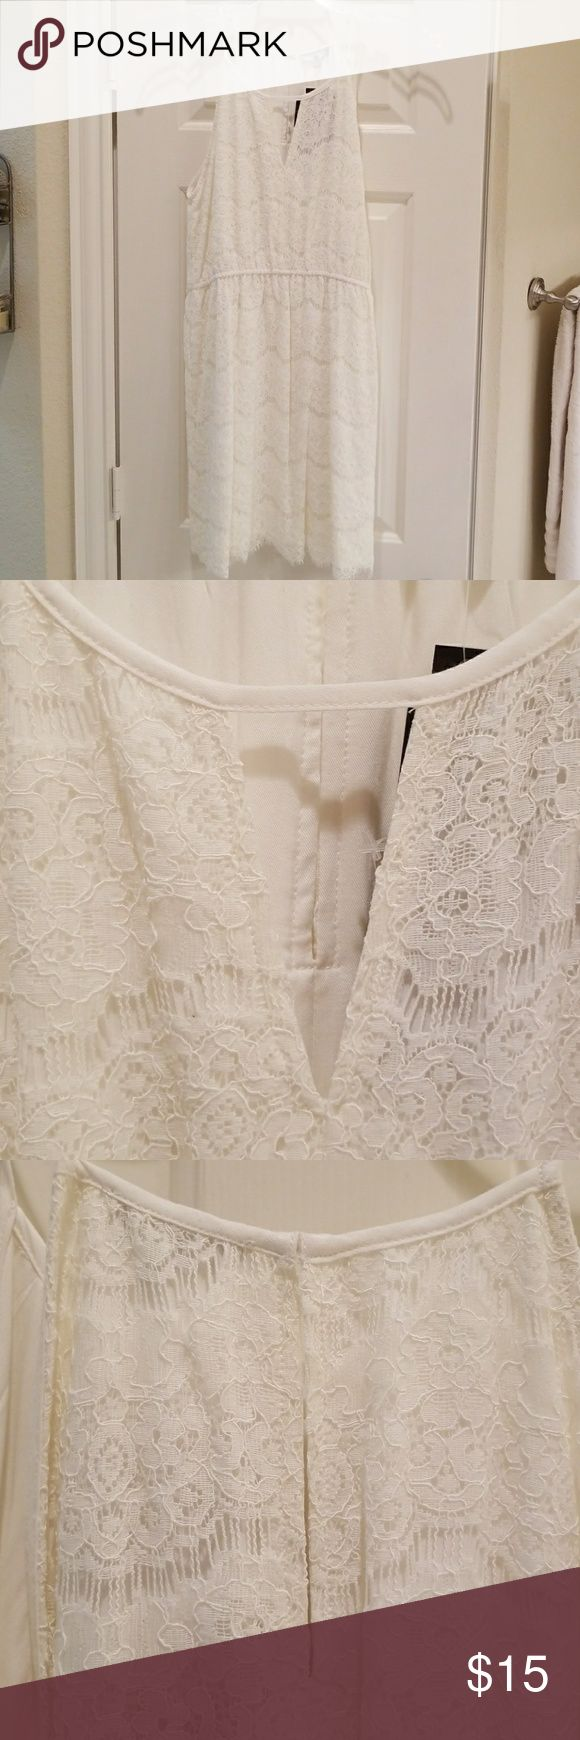 Beautiful white lace dress Delicate white lace spaghetti strap dress, perfect for a wedding or outdoor summer party.  Open V detail in front,  hook -eye closure in back.  Open lace detail at hem.  Light elastic around natural waist. New with tags. 🌹 Diamante Dresses